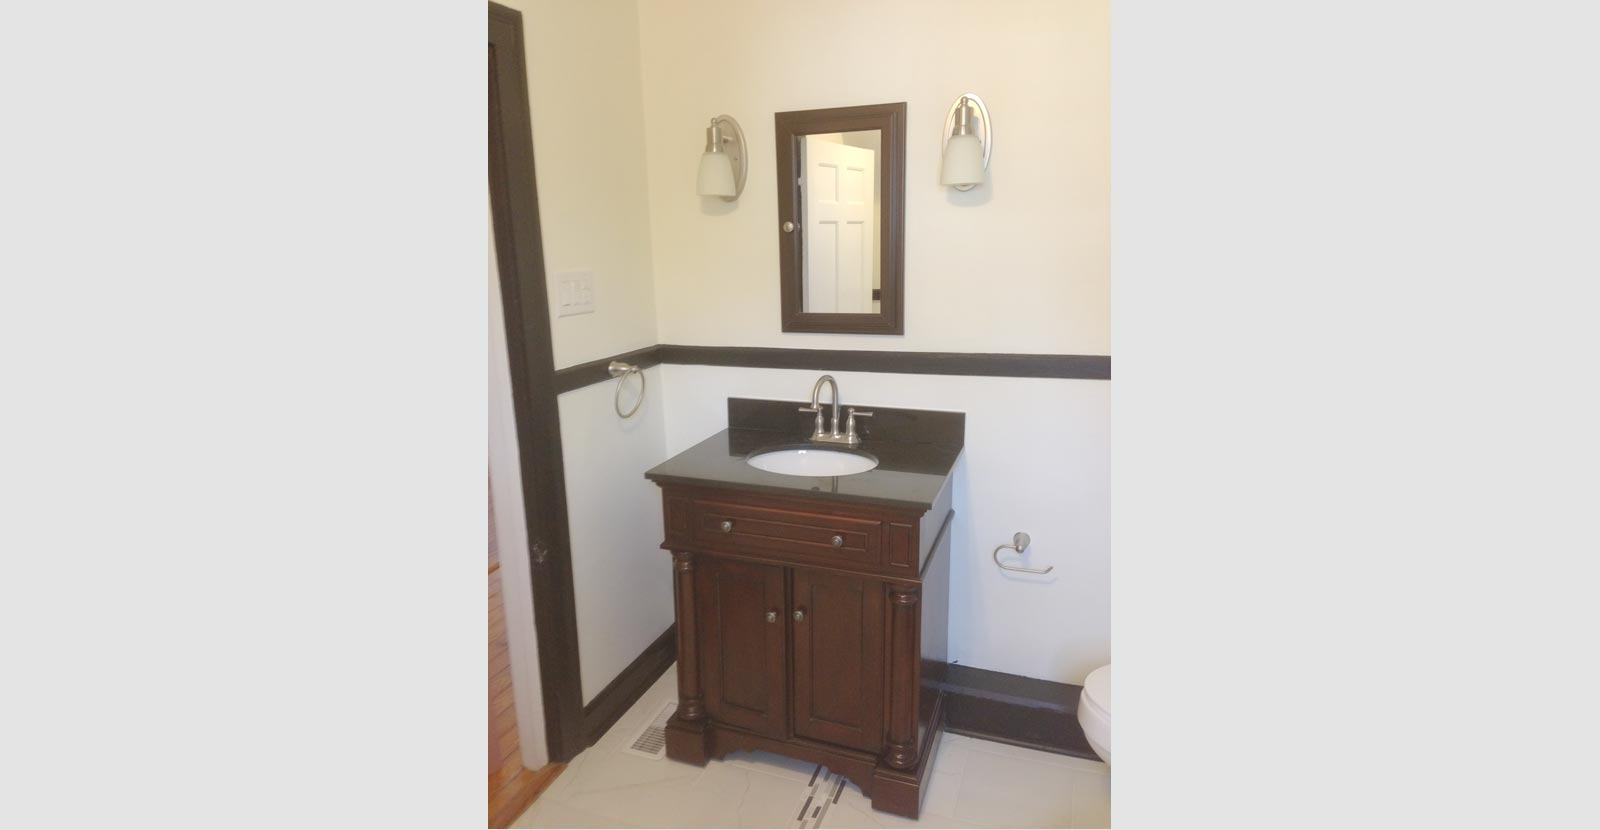 Whole Home Remodeling Contractors Hatchett Contractors - Whole bathroom remodel